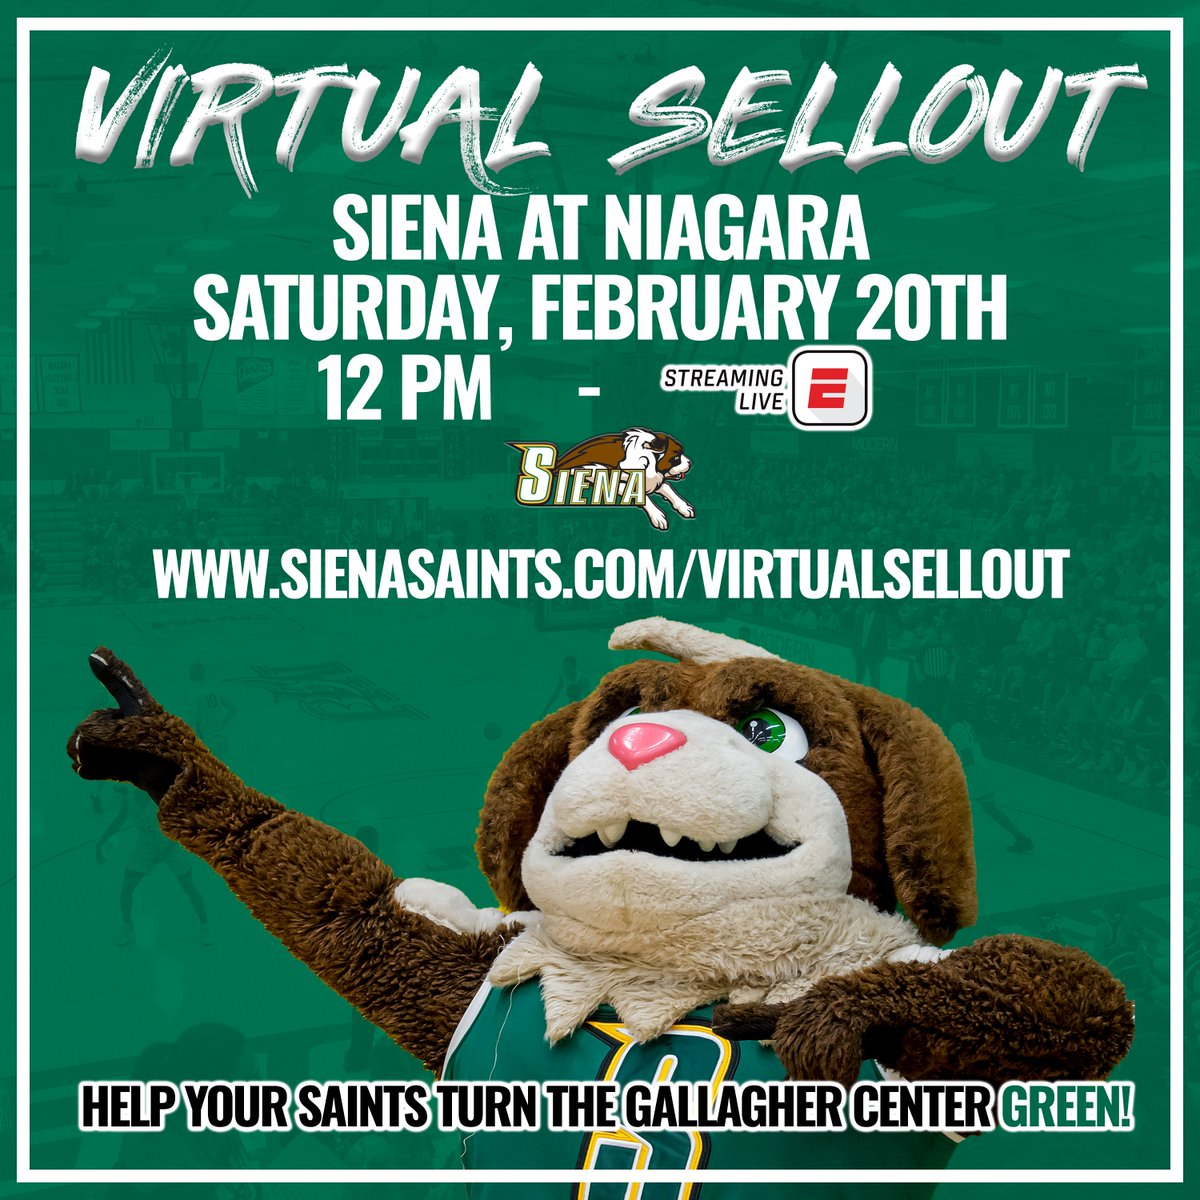 𝐃𝐎𝐍𝐓 𝐅𝐎𝐑𝐆𝐄𝐓❗️ Support @SienaMBB and help them turn the Gallagher Center 𝐆𝐑𝐄𝐄𝐍🟩 as they look to 𝕧𝕚𝕣𝕥𝕦𝕒𝕝𝕝𝕪 sell out their Feb. 20 matchup at Niagara Supporters will receive a commemorative 🎟️ and other special 🎁❗️ 🎟️ bit.ly/3sxK4aX #MarchOn